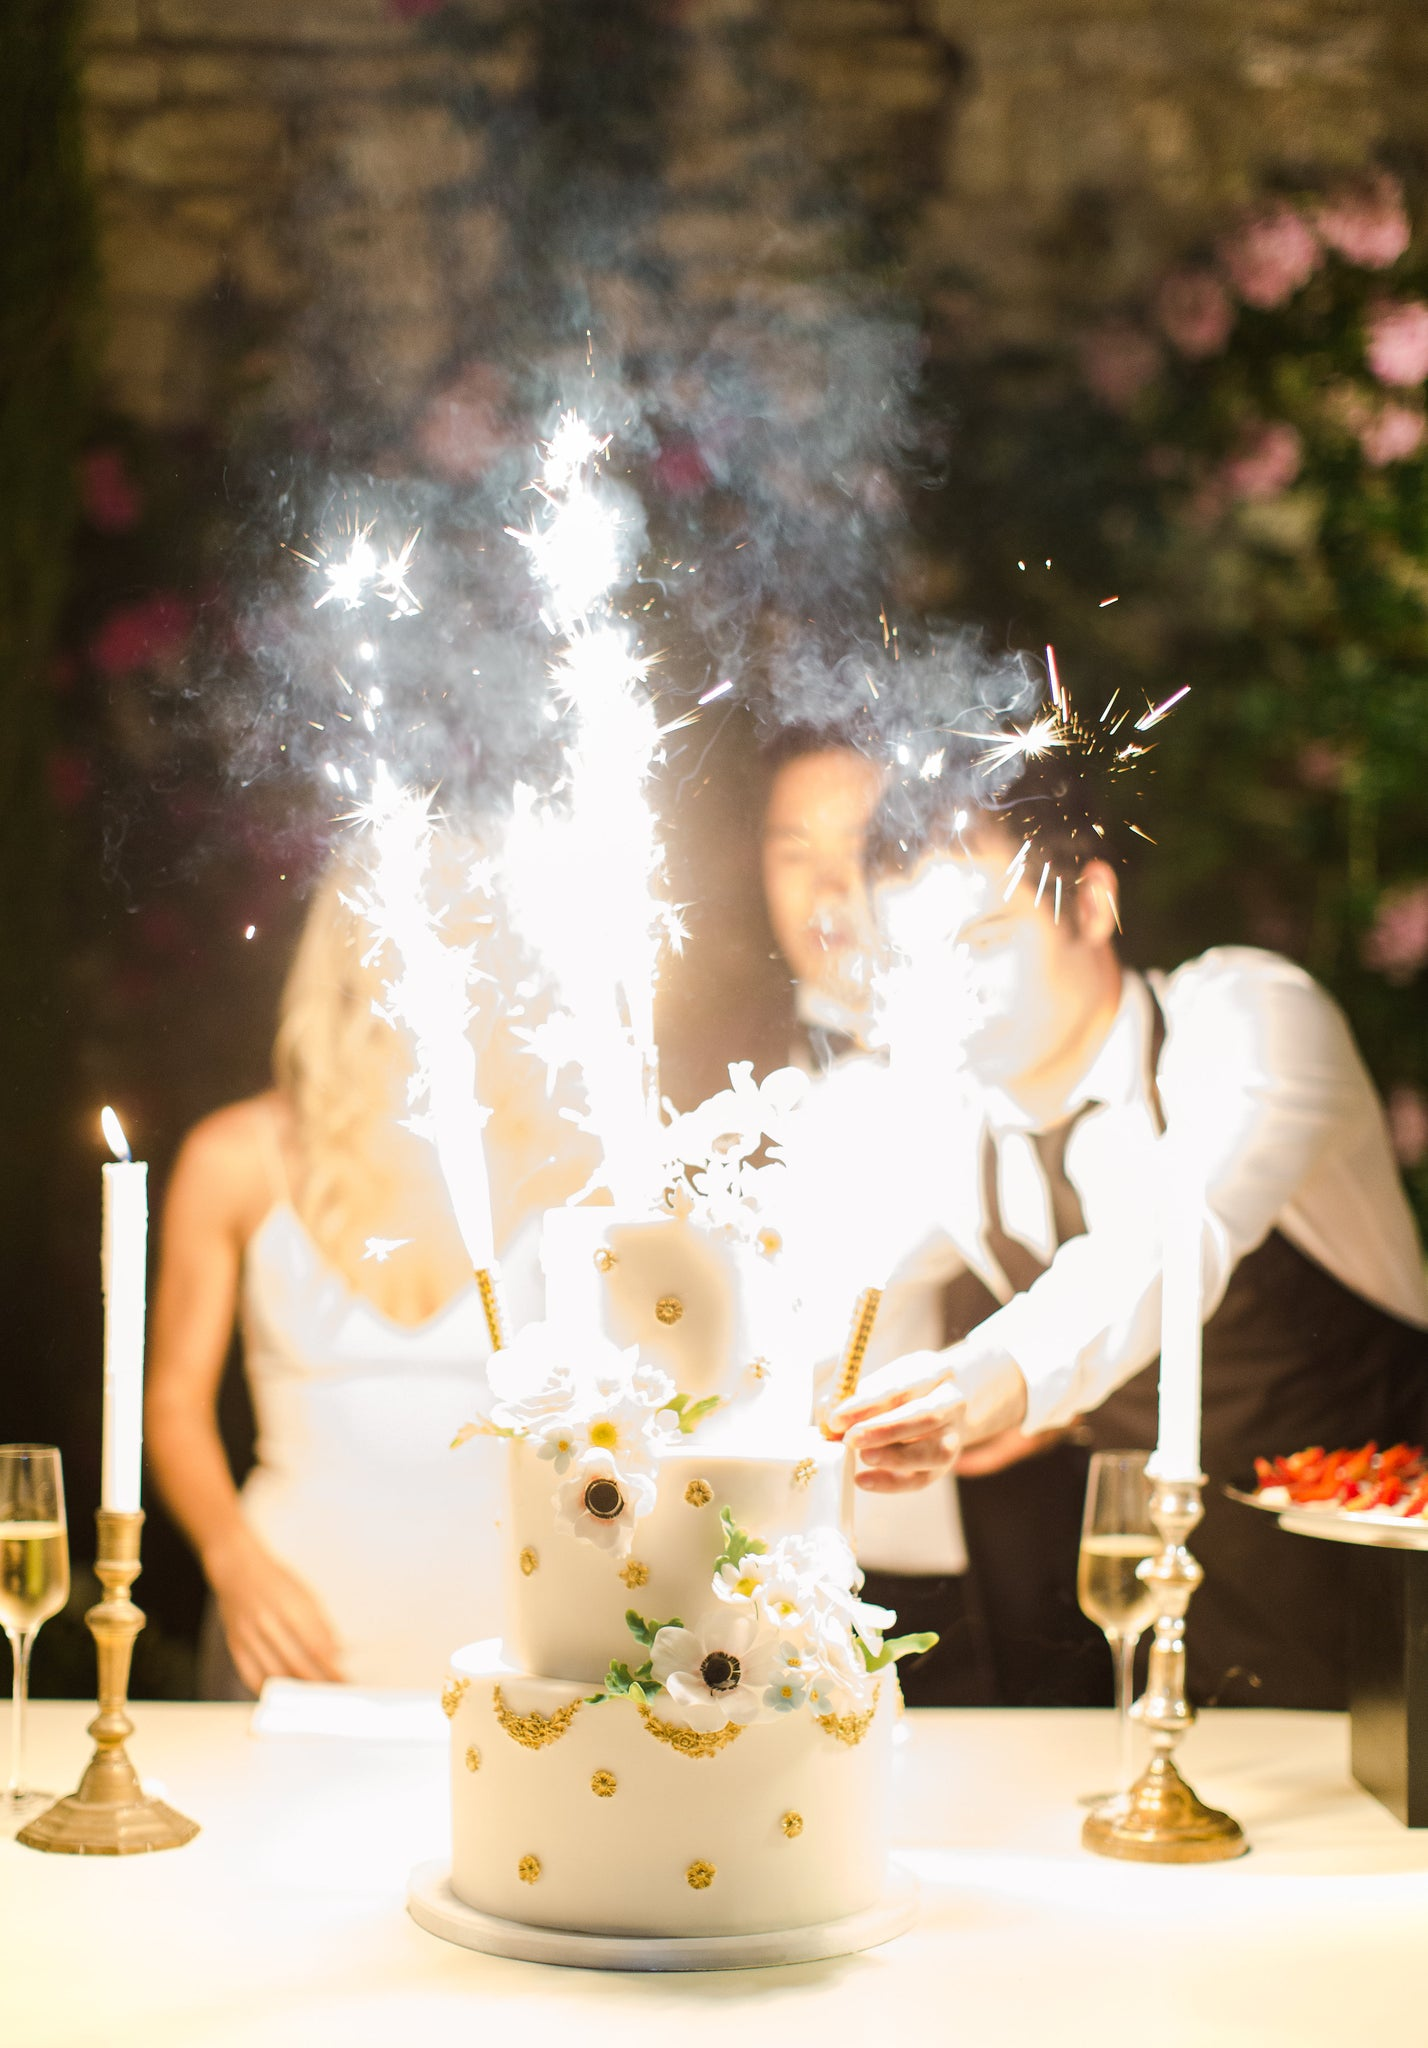 Katie Dean Jewelry romantic destination wedding at a chateau, Provence, France, cake sparklers